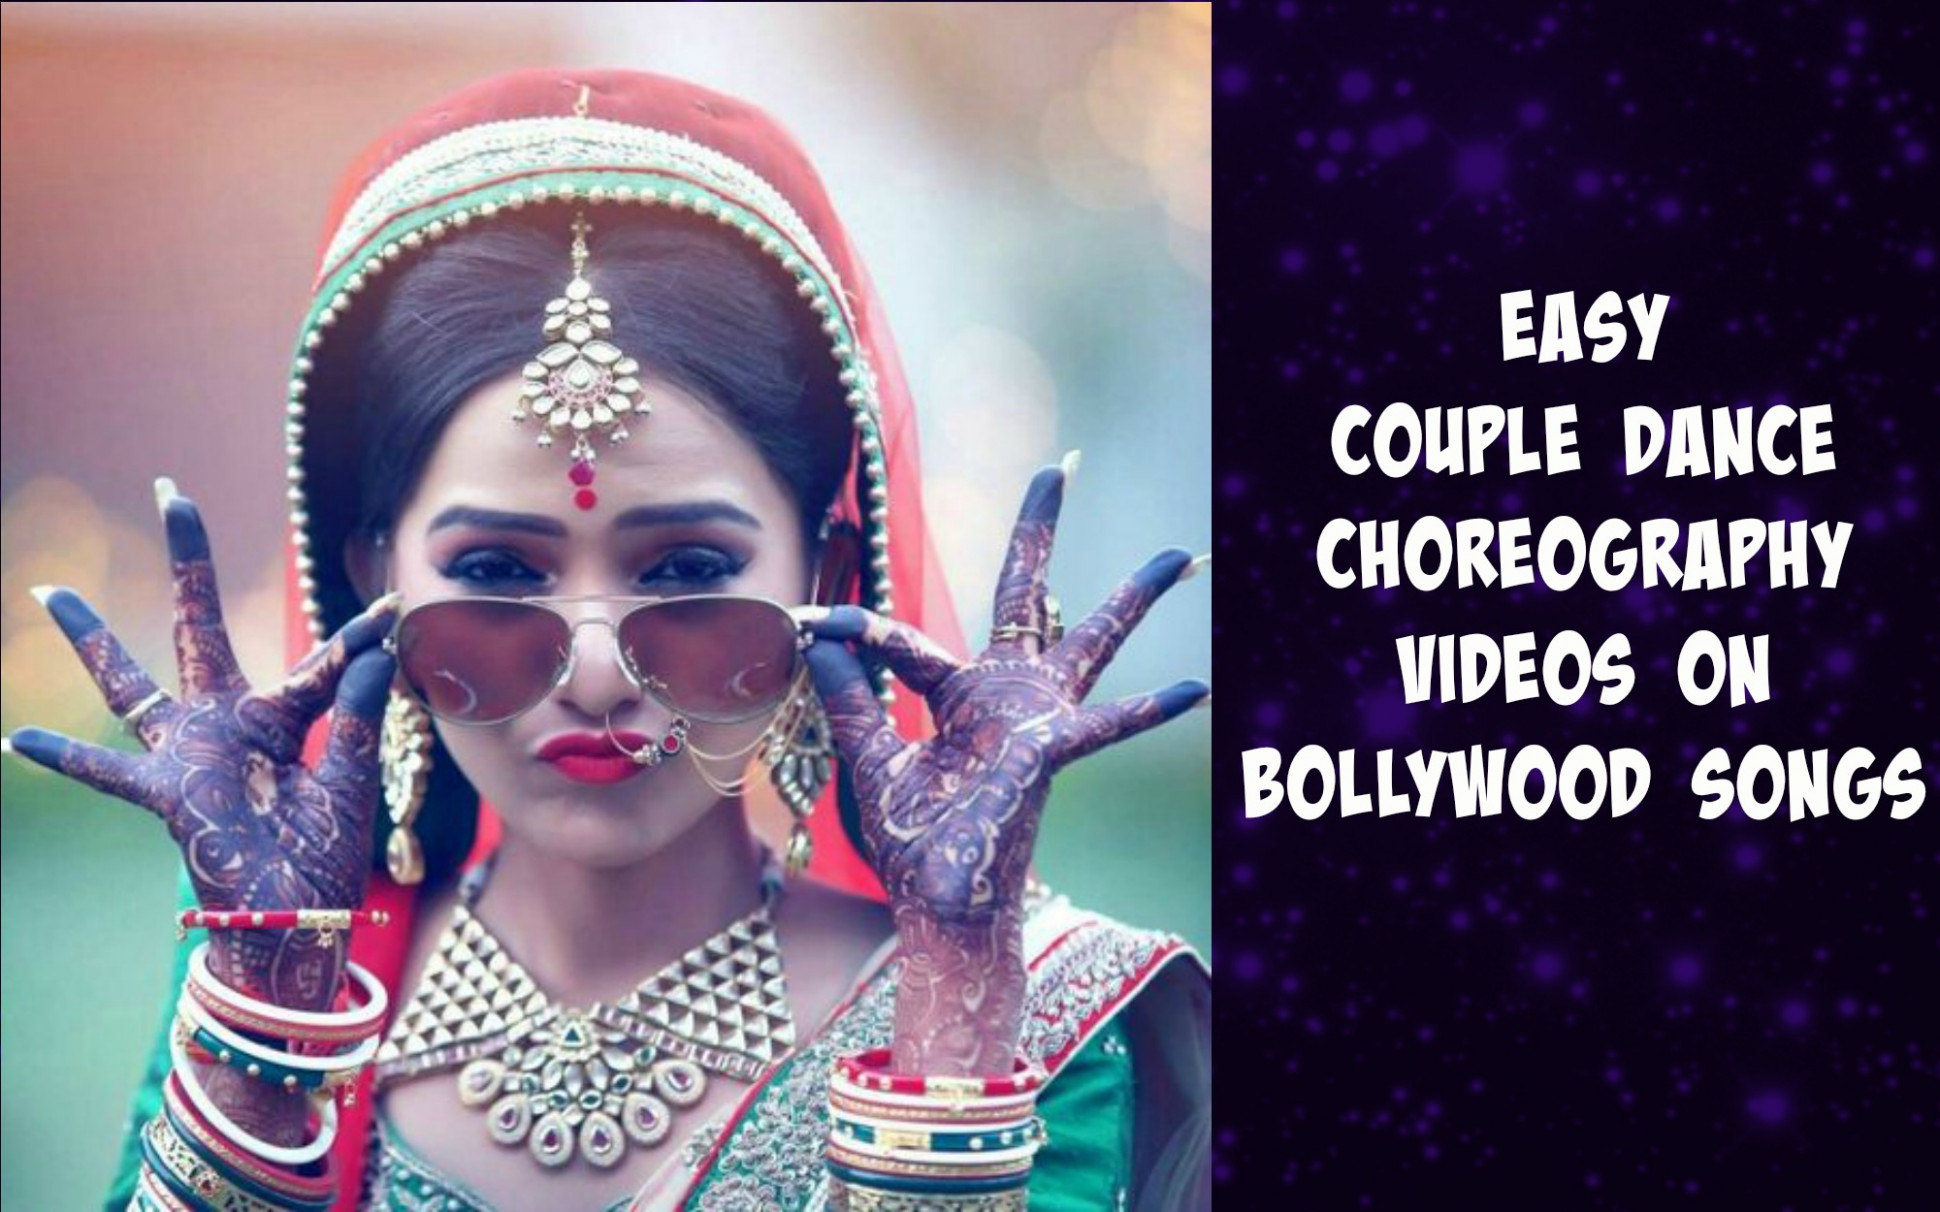 Easy couple dance choreography videos on bollywood songs ...